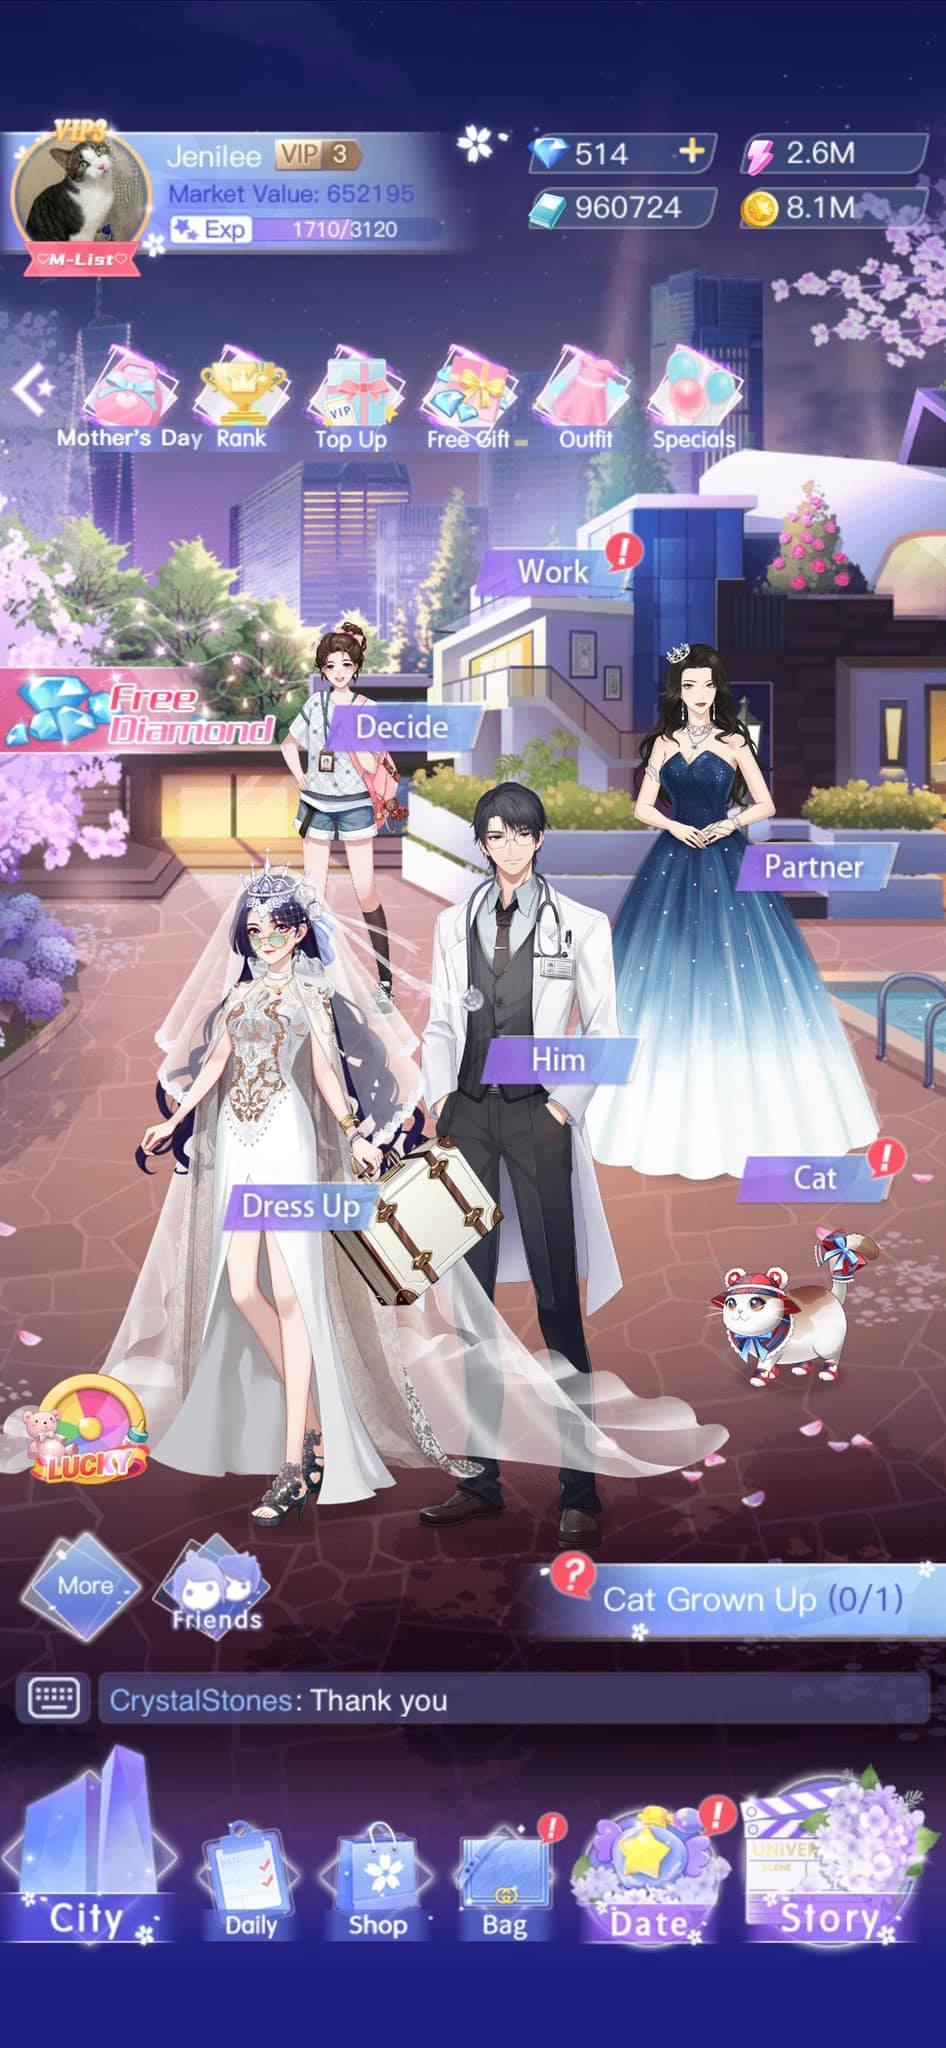 Flipped In Love Anime Dressup Game Review – kawaiifluff